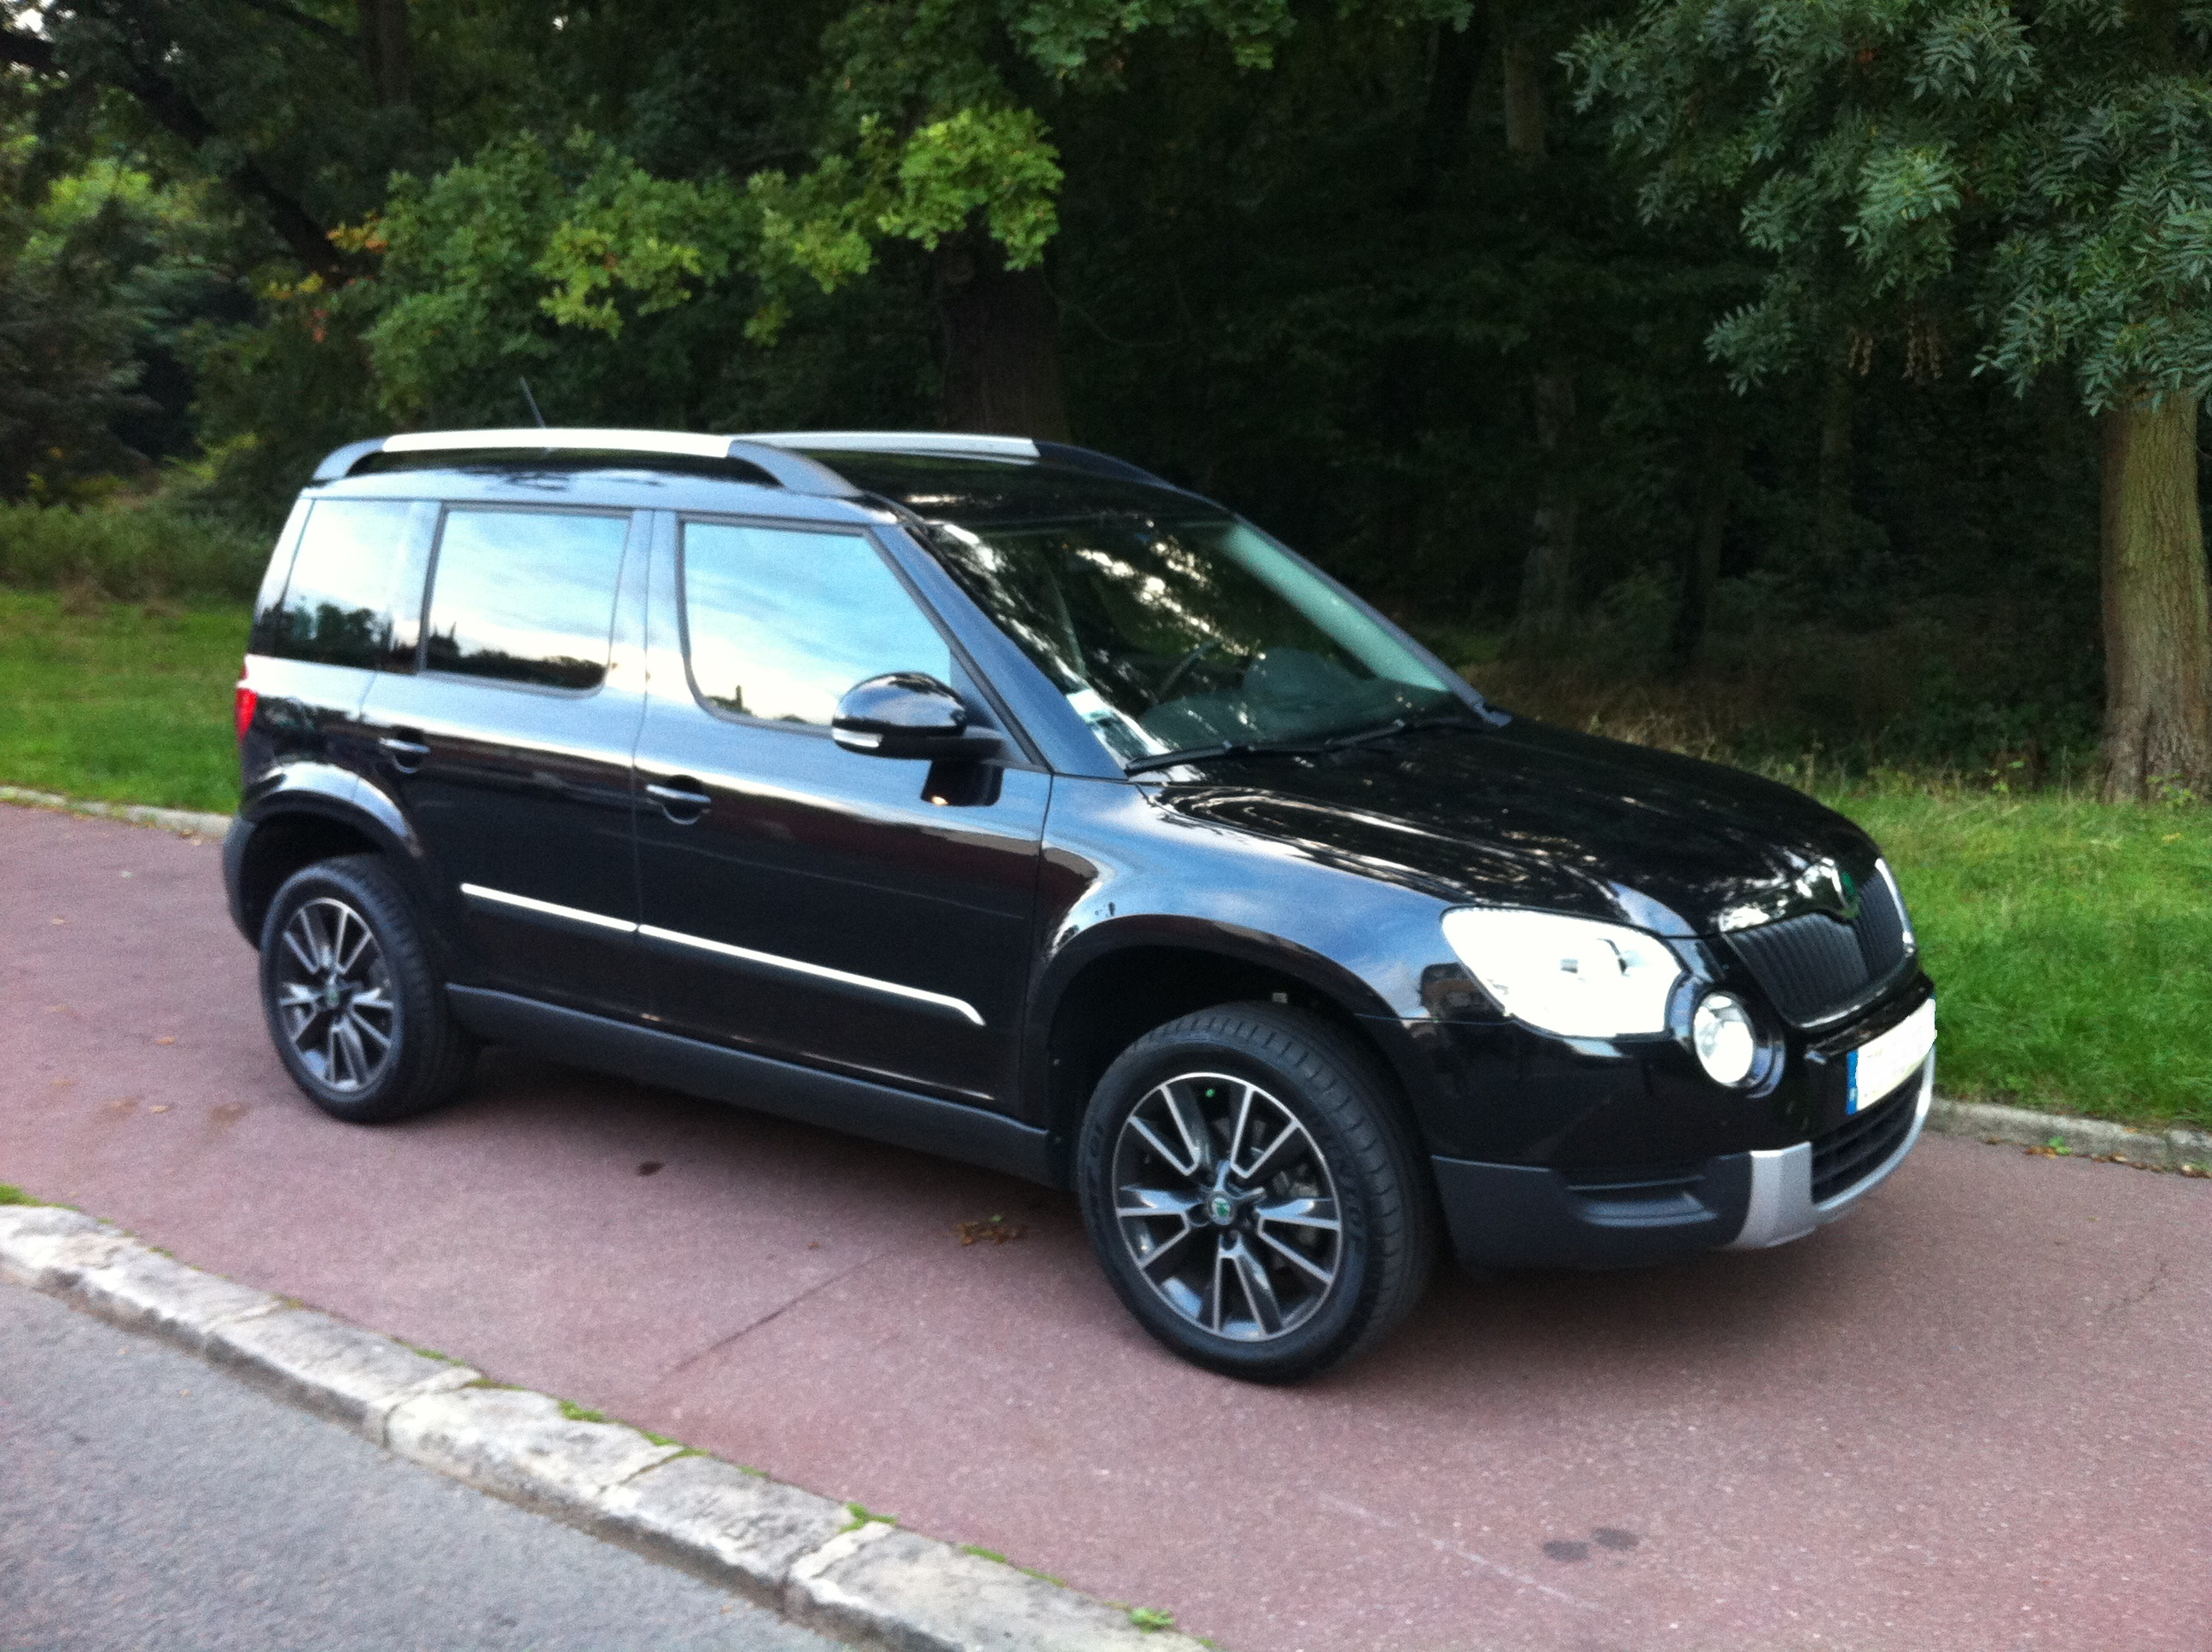 skoda yeti noir tdi skoda yeti noir tom de mort photos club. Black Bedroom Furniture Sets. Home Design Ideas